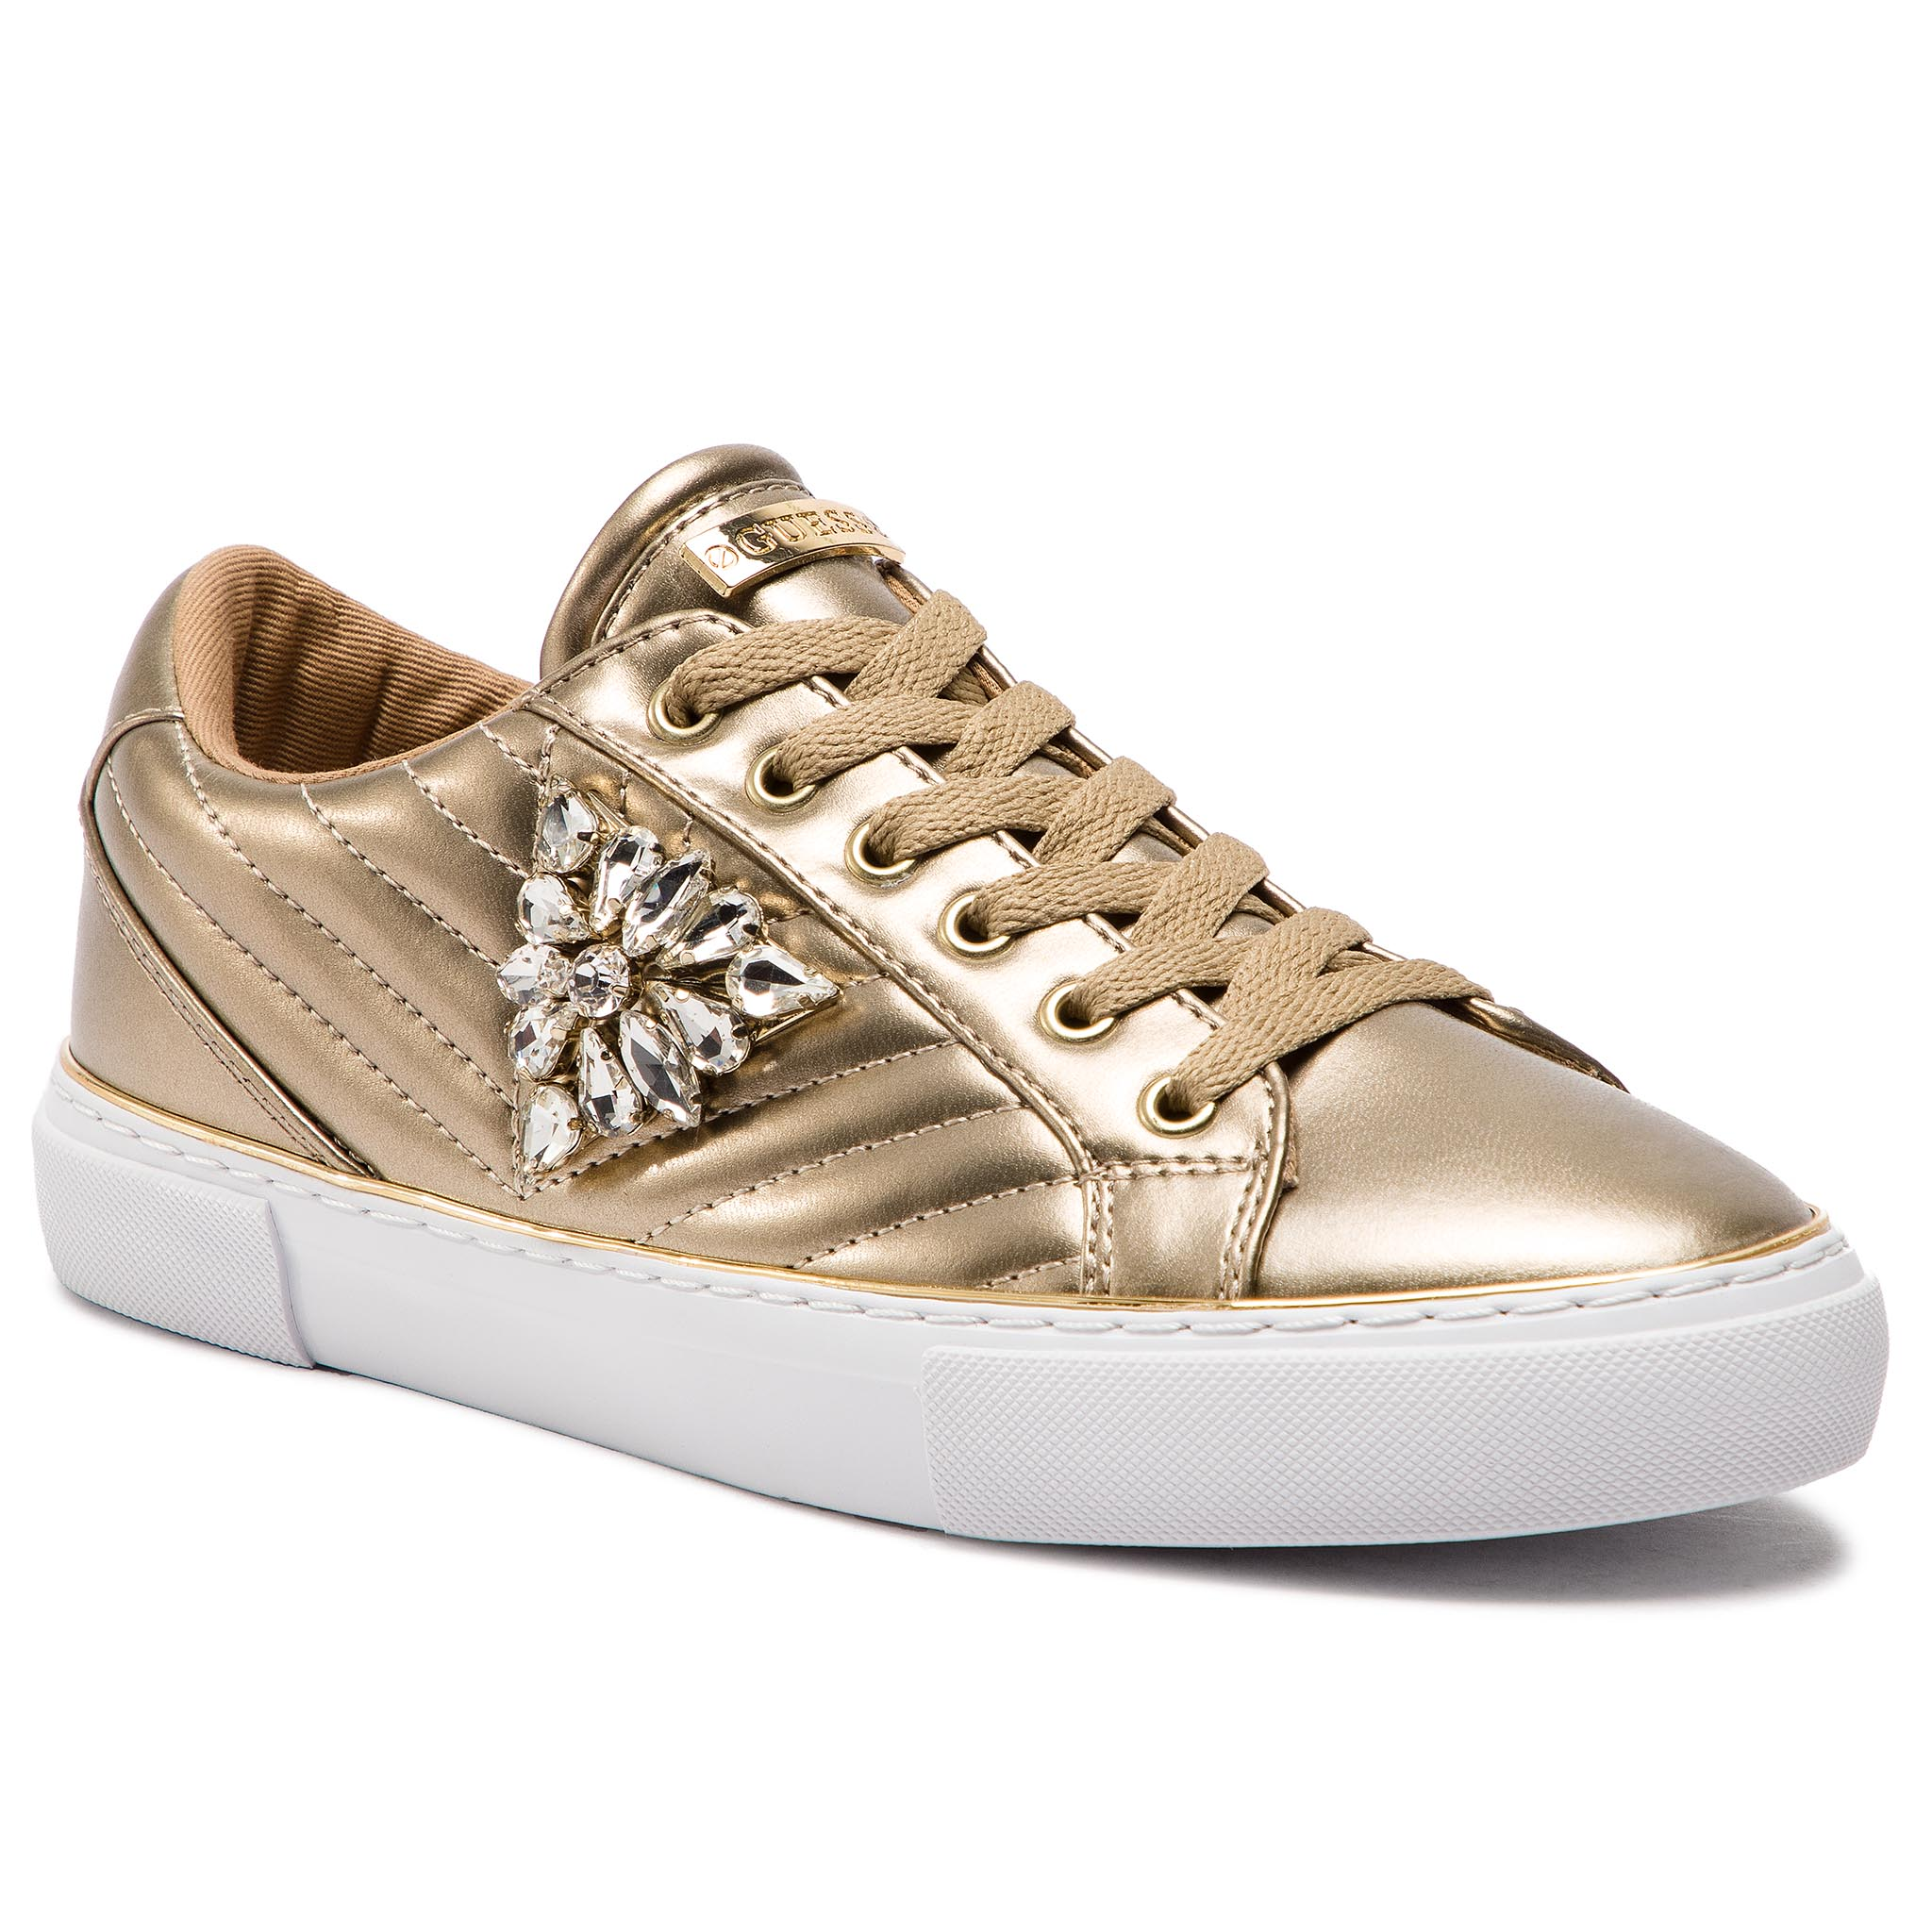 Sneakers GUESS - Groovies FL5GRS LEL12 GOLD